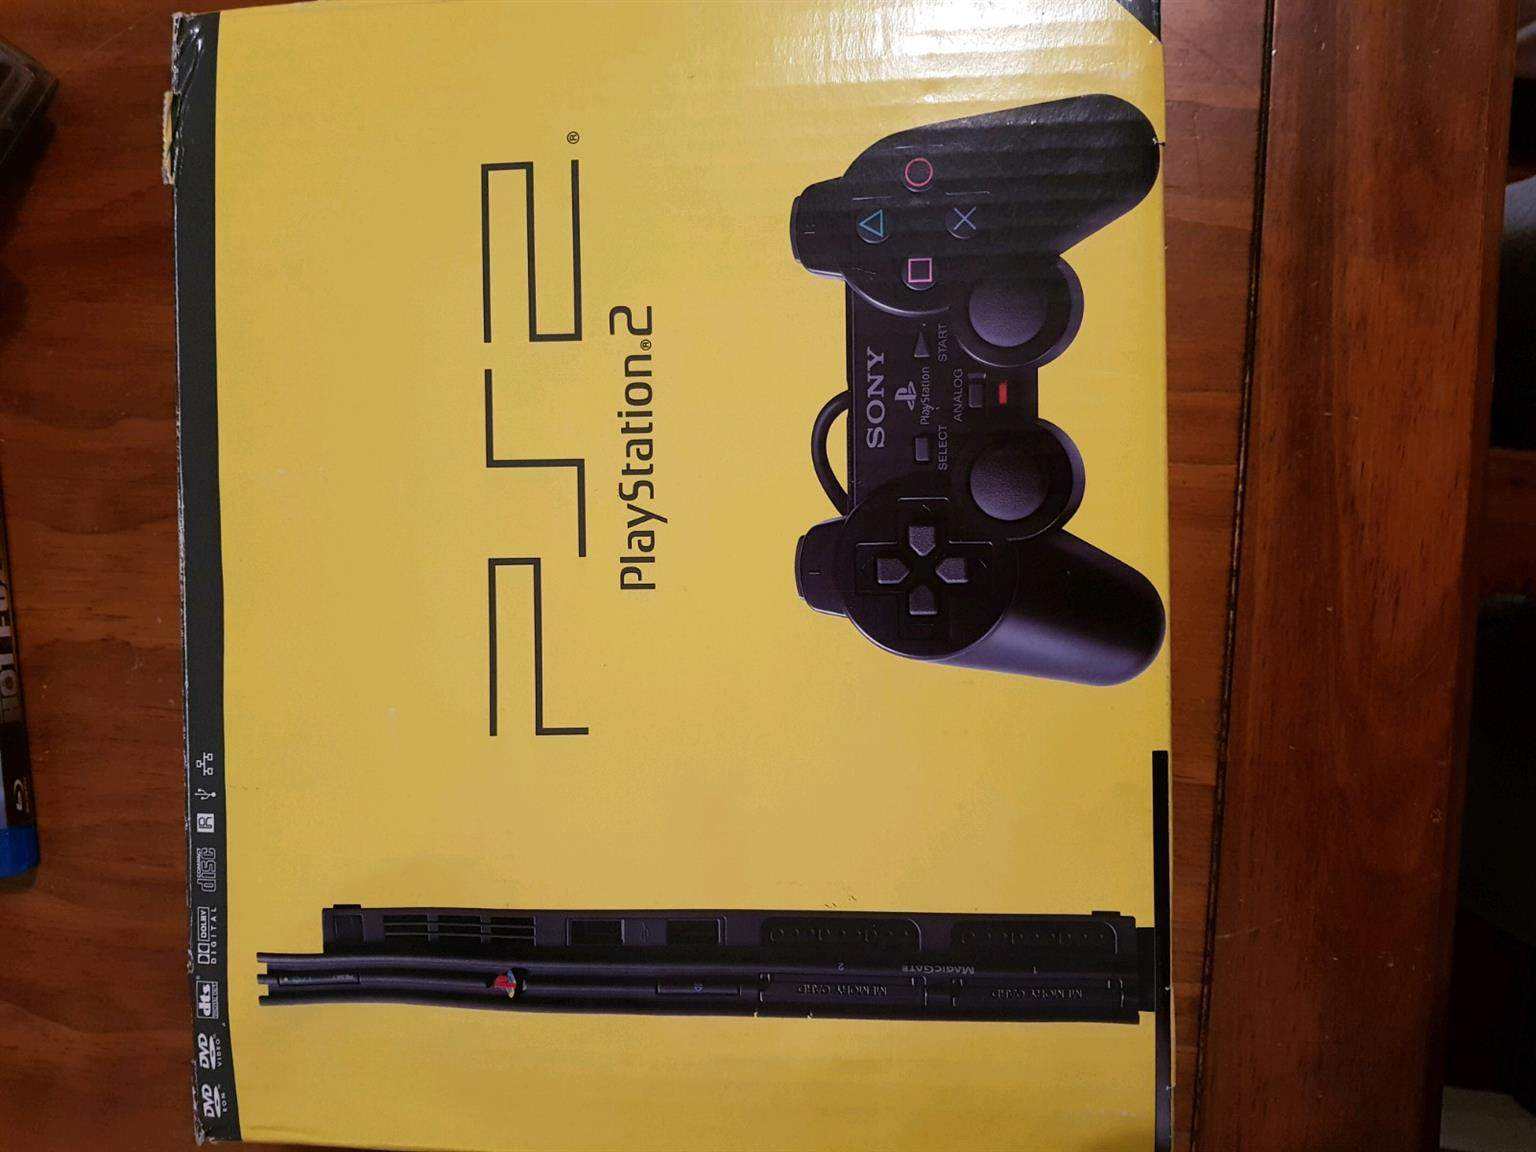 Sony ps2 console with 1 game bundled still as good as new includes all cables 1 sony dual shock 2 control other controler sold separately R200 and serious buyers no scammers  from I'm available anytime situated in mayfair close to the oriental plaza